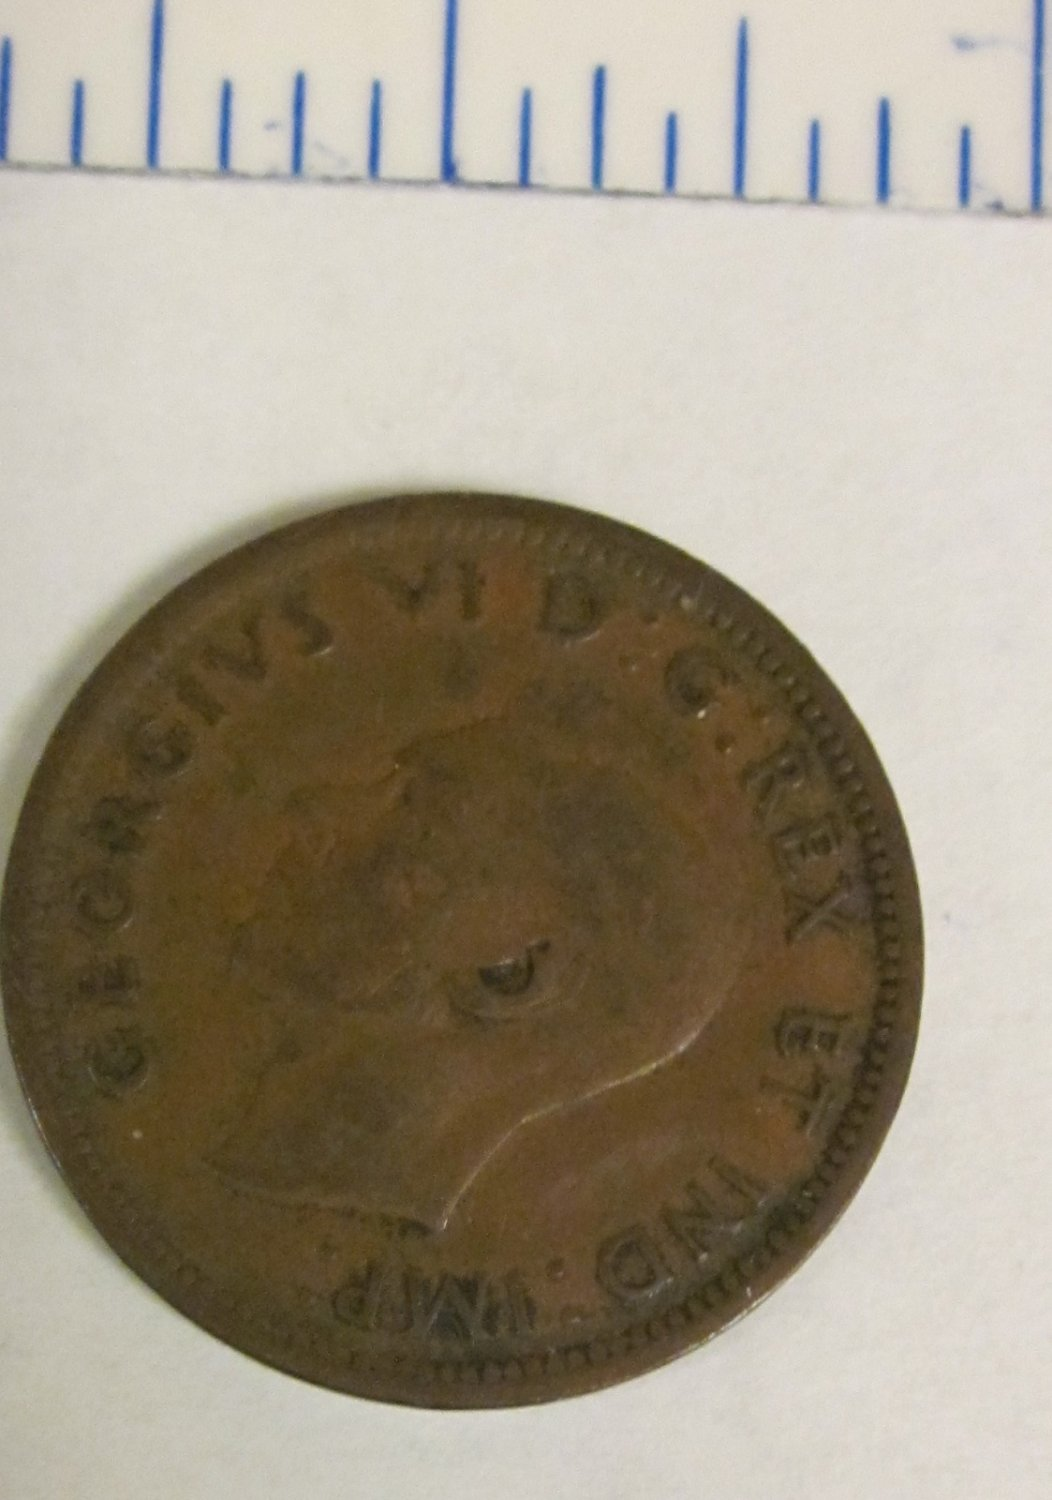 1938 Canadian Small Cent - Canada Penny Copper Coin Old Rare Money